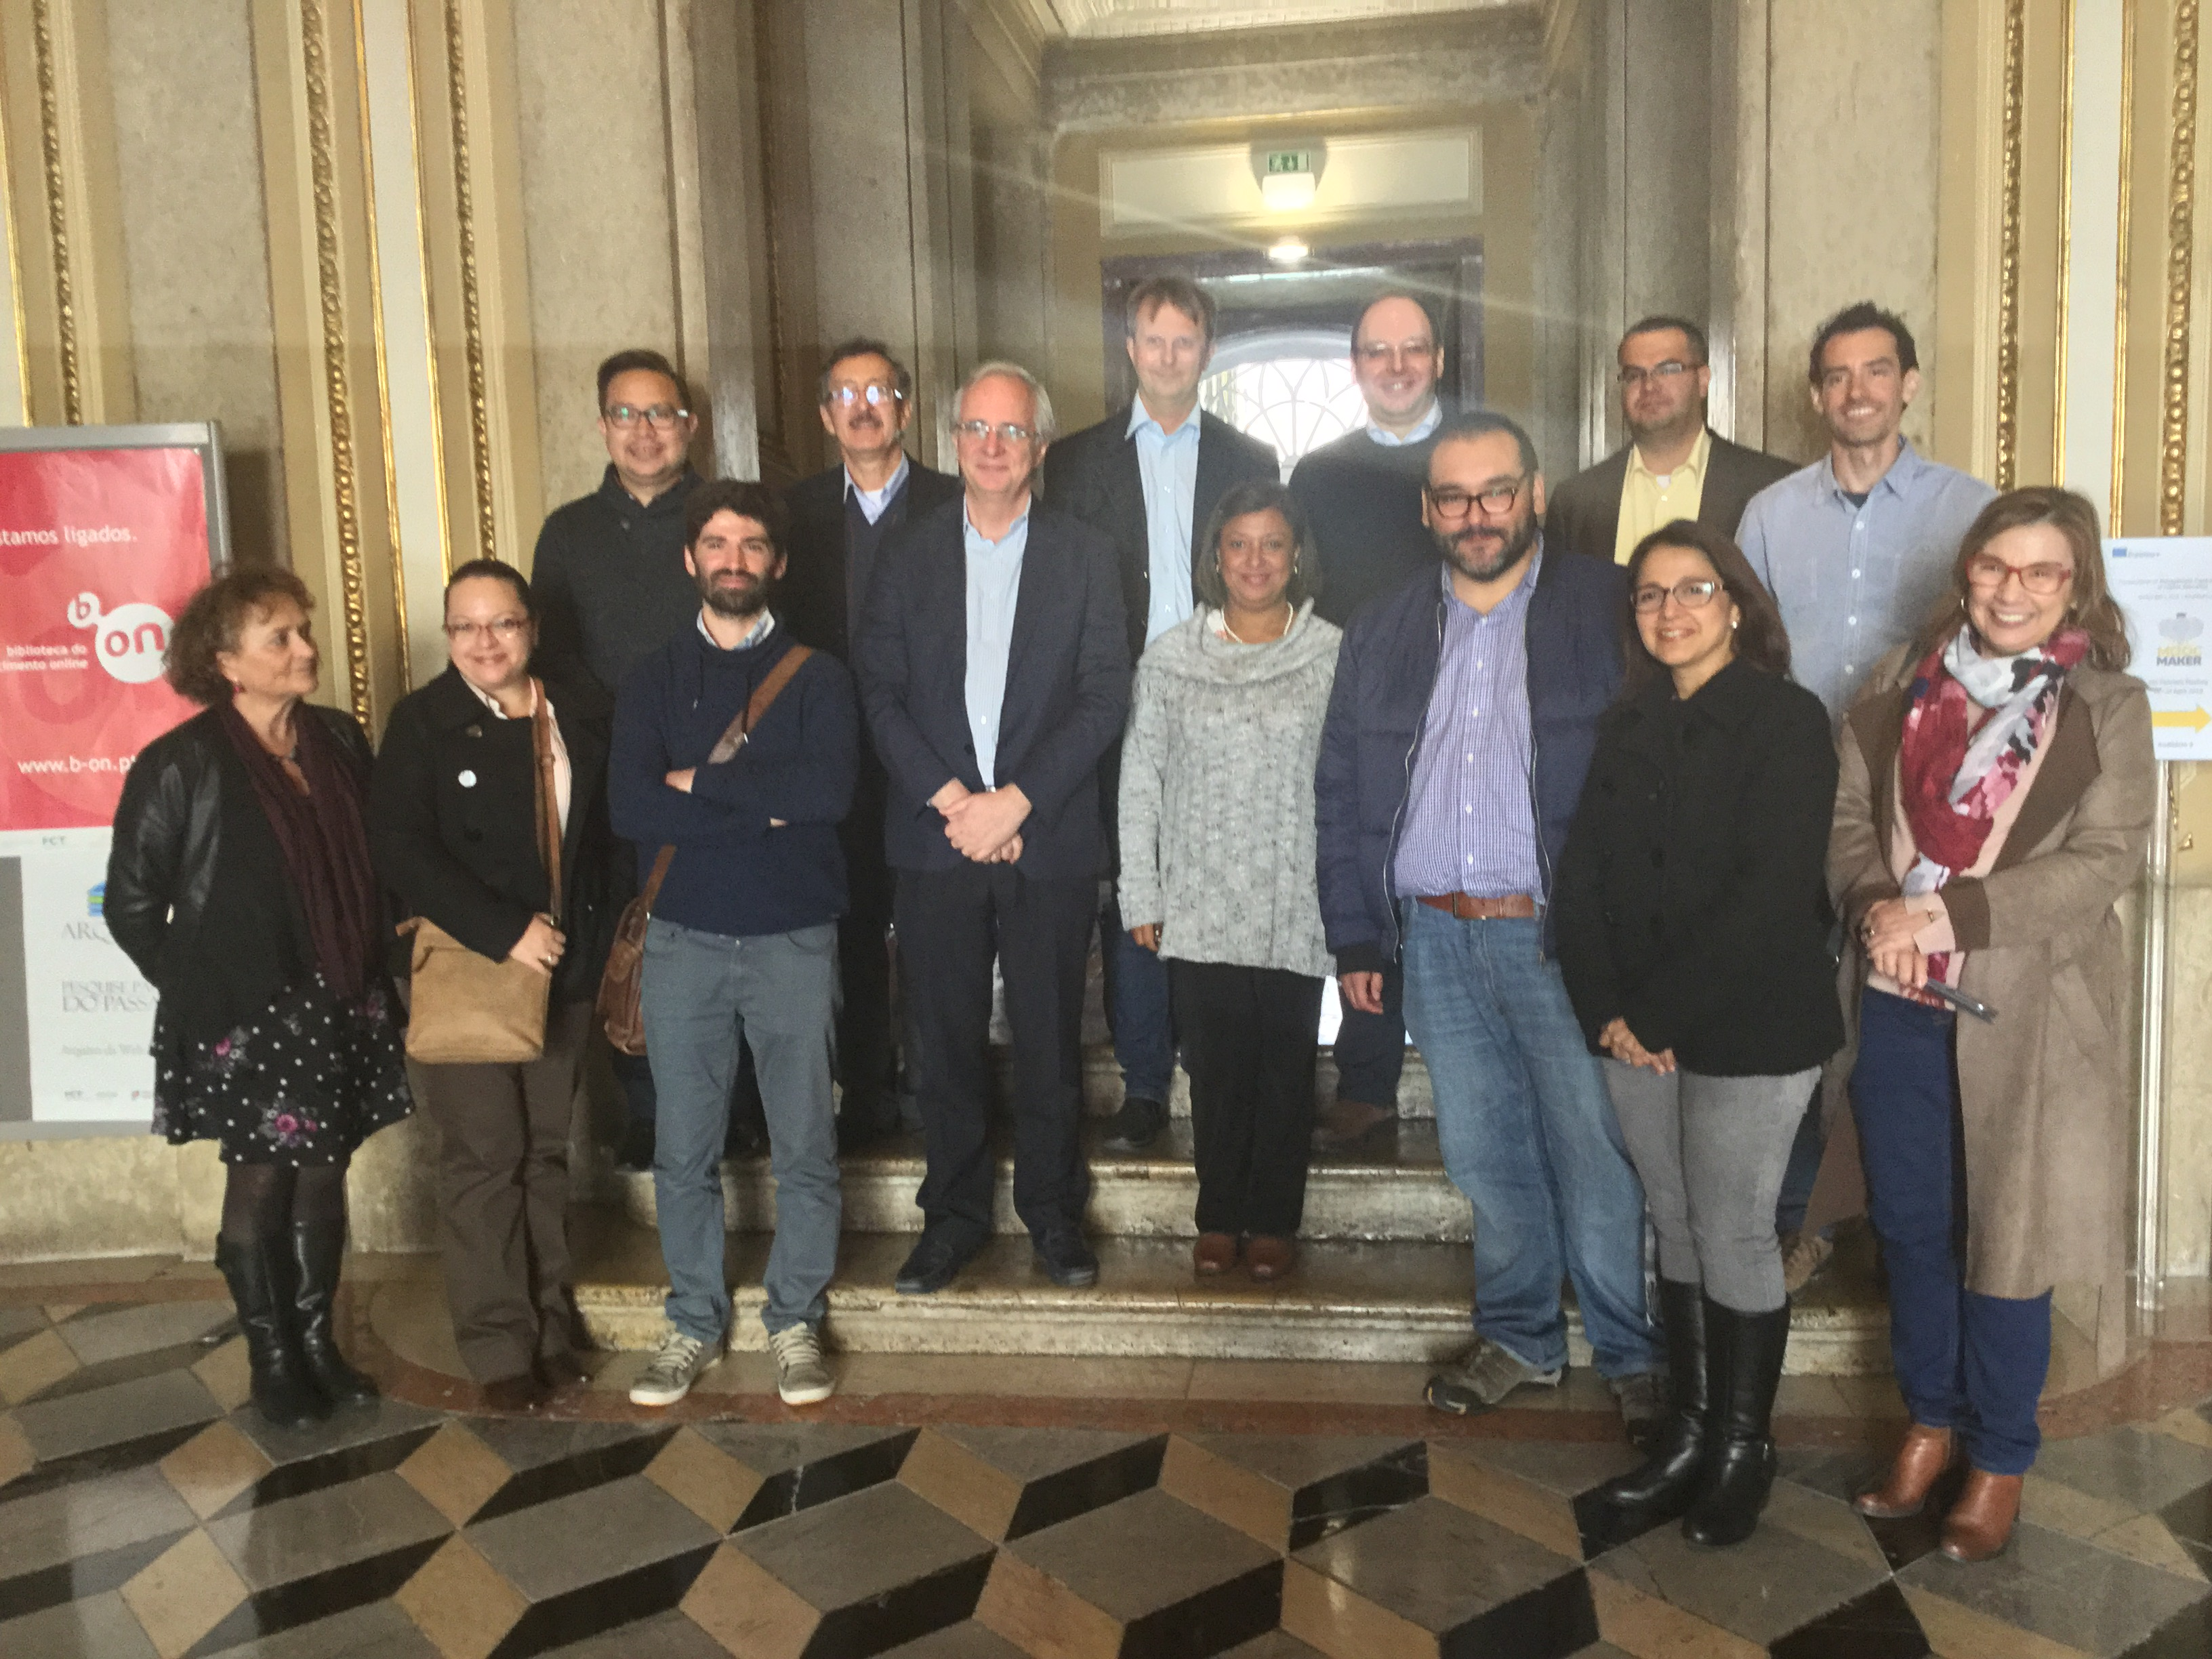 5th. Plenary meeting of MOOC-Maker partners in Lisbon, Portugal